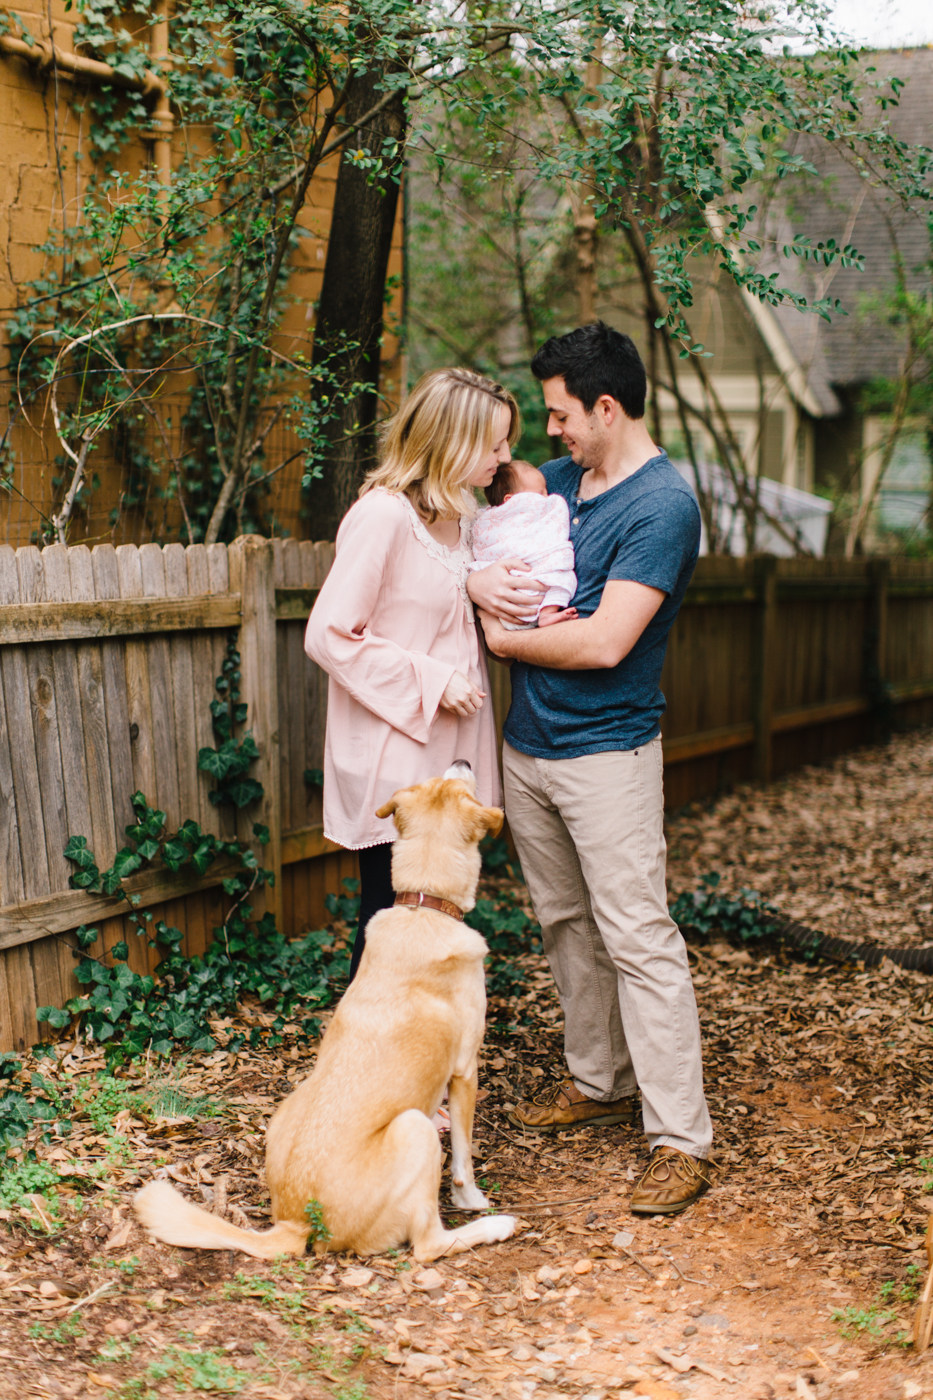 Four Corners Photography Adelyn Newborn Best Atlanta Newborn Photographer Atlanta Best Newborn Photography Newborn Atlanta Maternity Photographer Lifestyle Newborn Photography